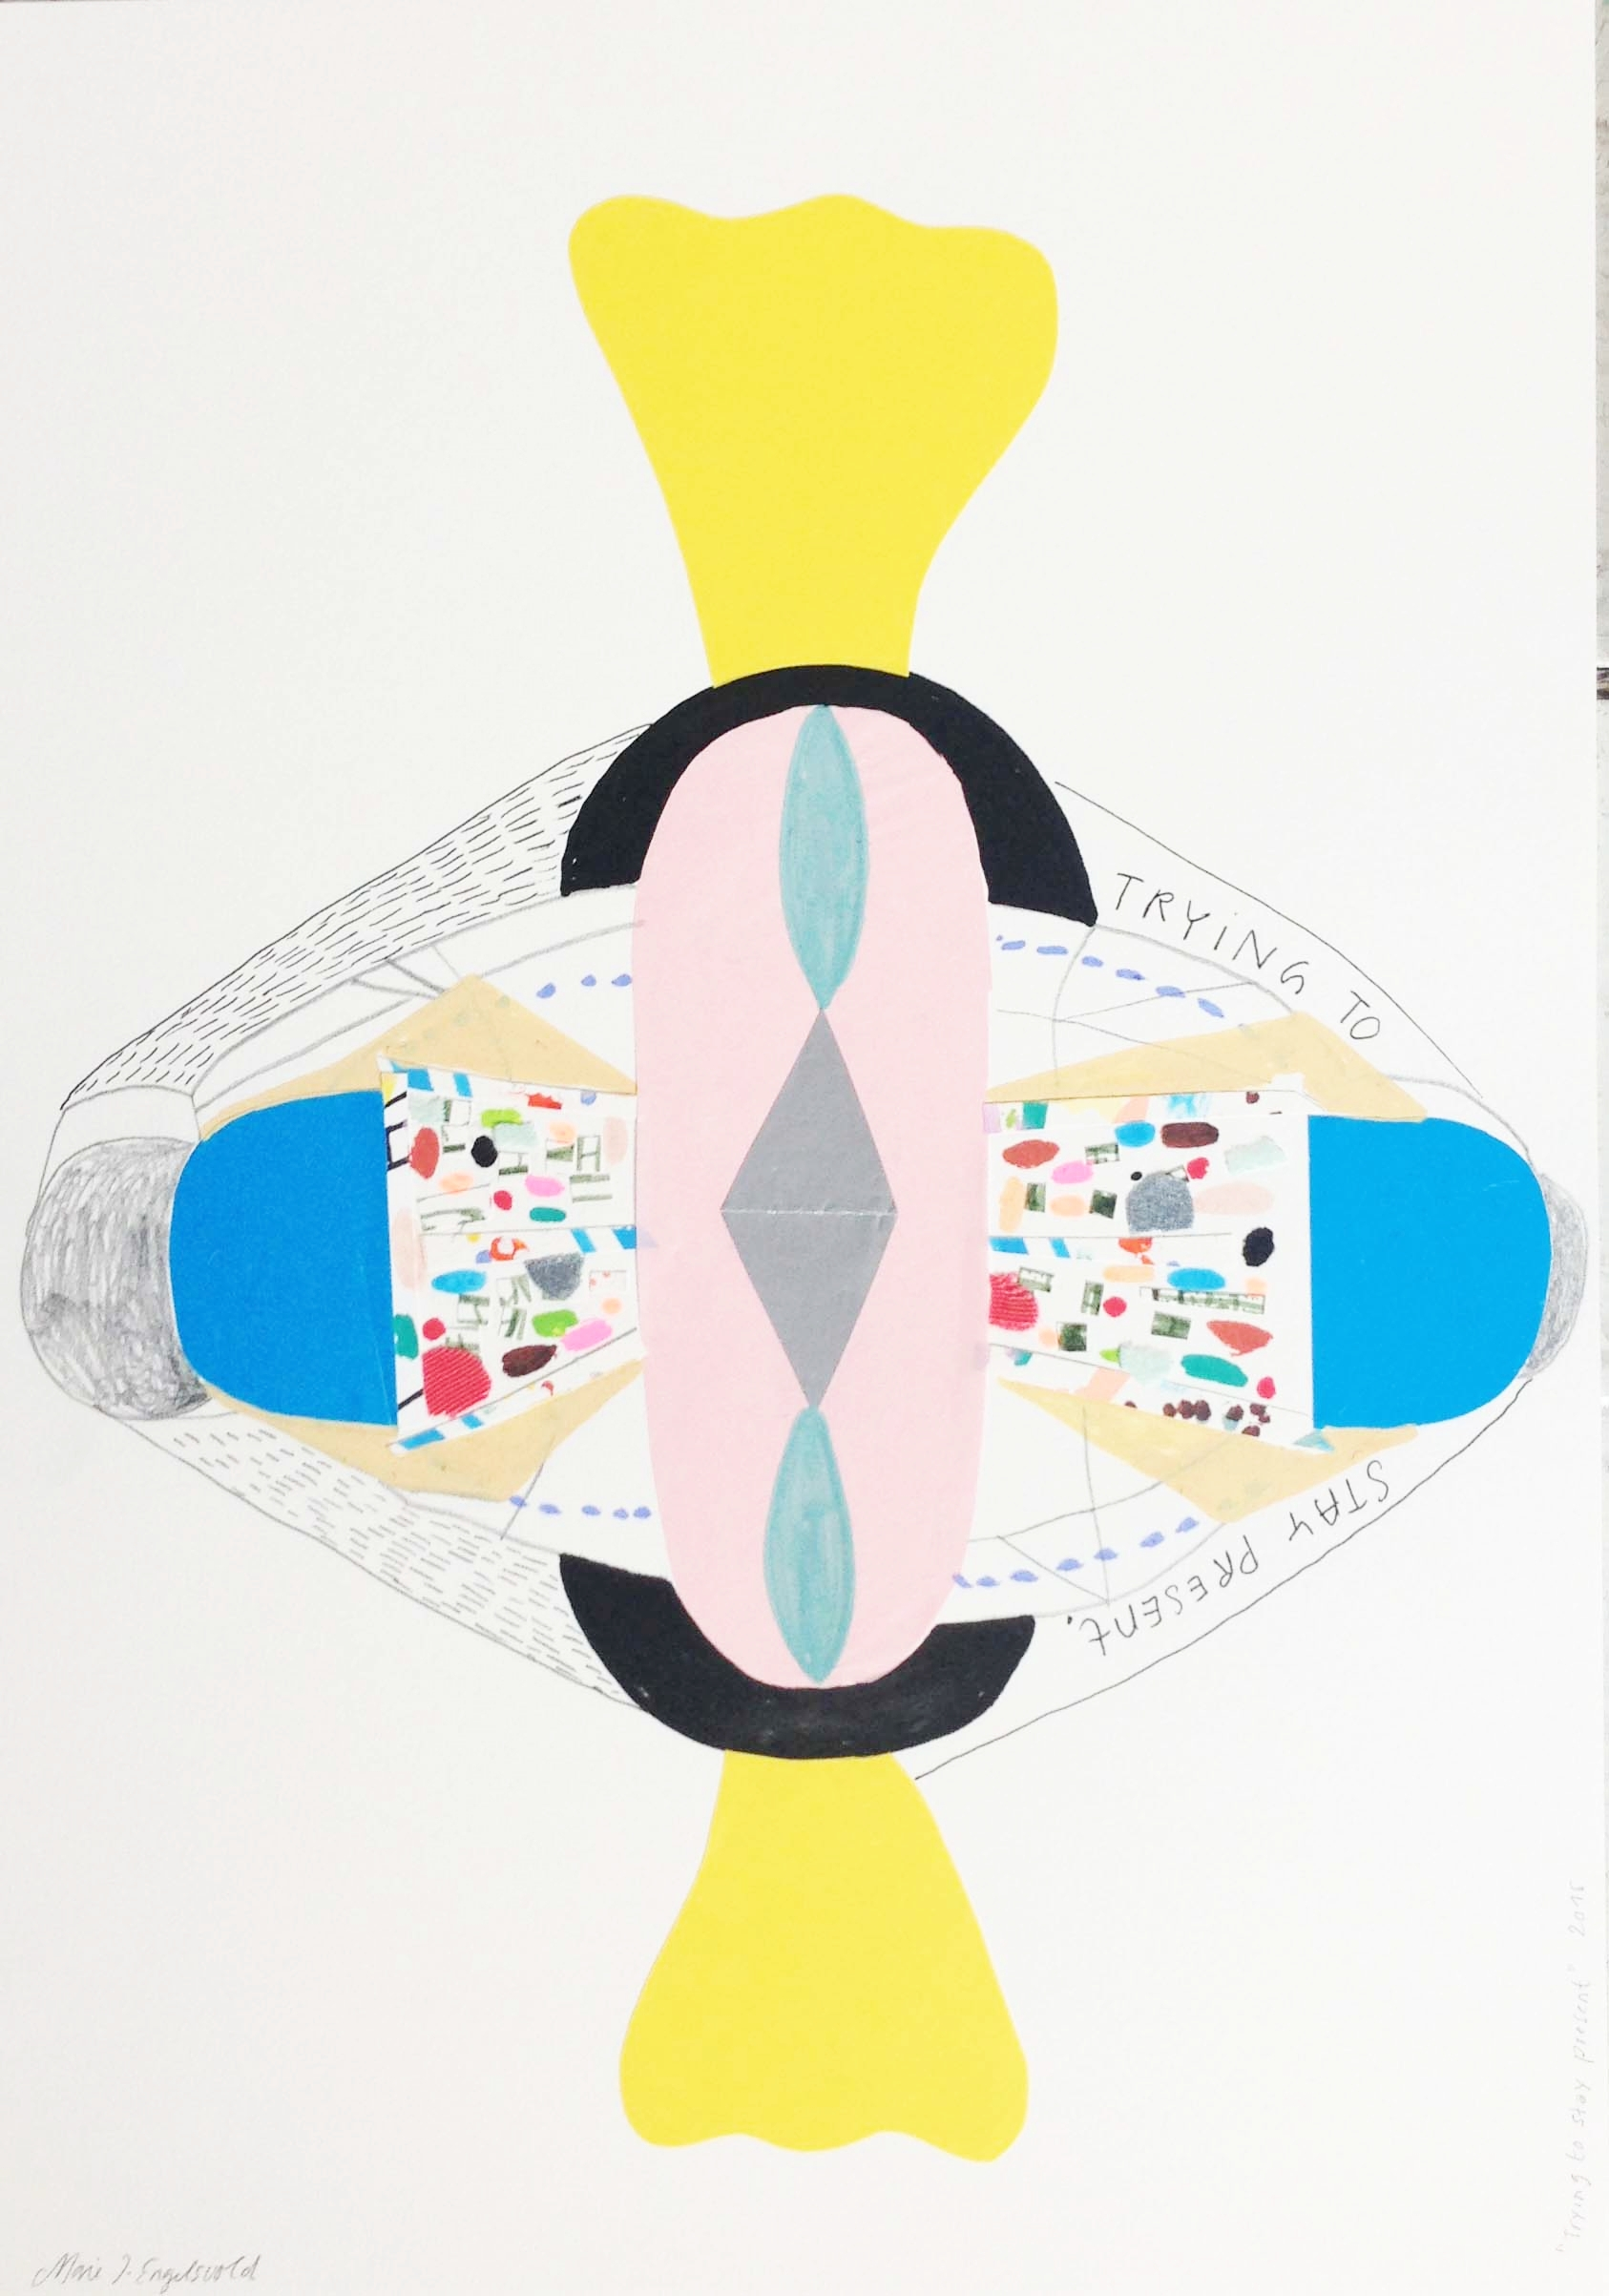 "Marie J.Engelsvold. ""Trying to stay present"" 42 x 29,7 cm. acrylic markers, paper cuts and pencil on paper. 2015."